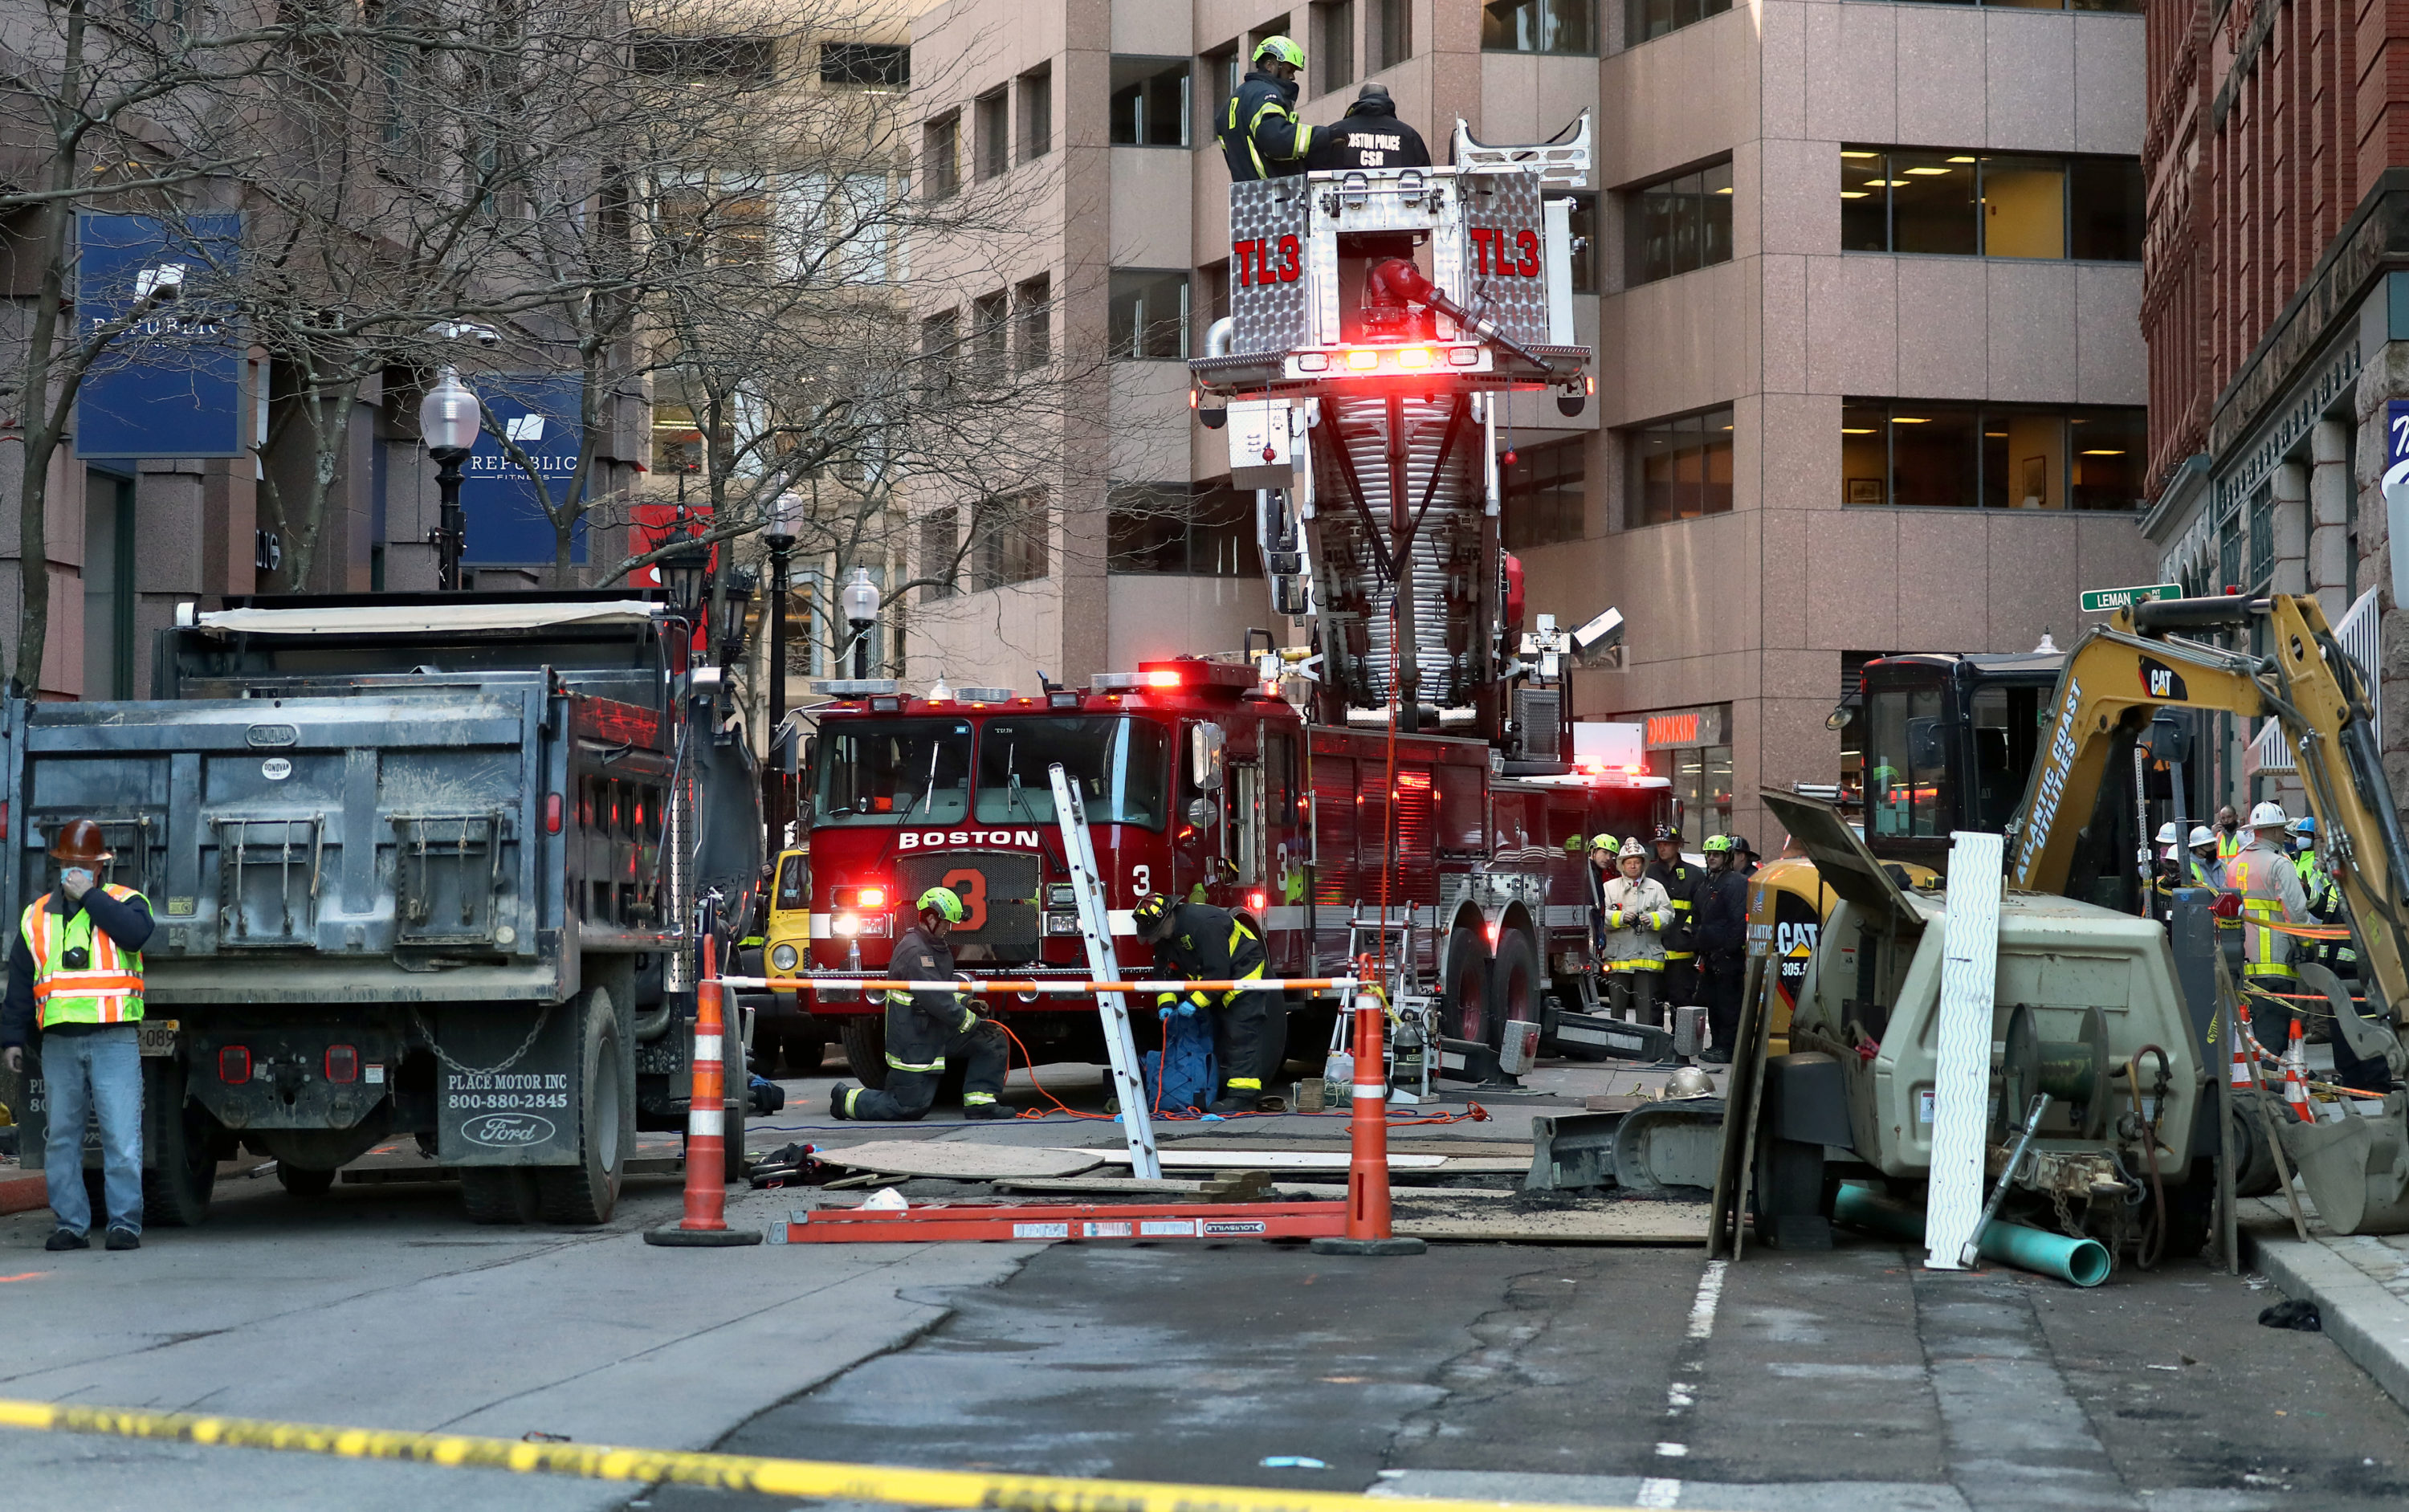 The truck involved in the crash is pictured on the left as firefighters and first responders stand at the scene in downtown Boston on Feb. 24, 2021. (David L. Ryan/The Boston Globe via Getty Images)